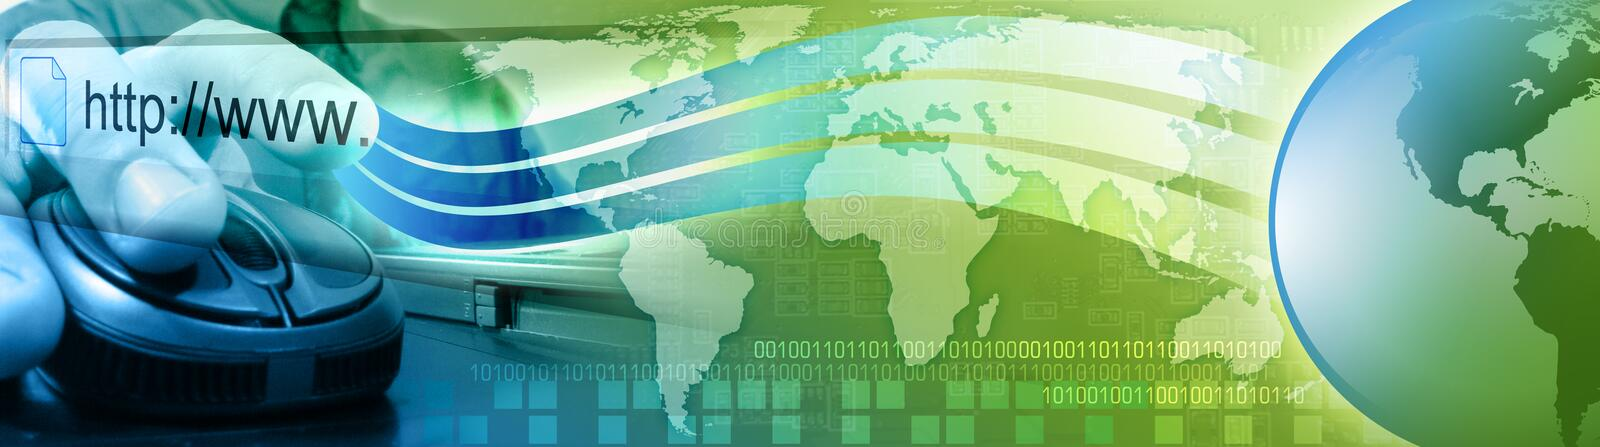 Download Computer Internet Mouse Man With Earth Stock Illustration - Image: 12705521